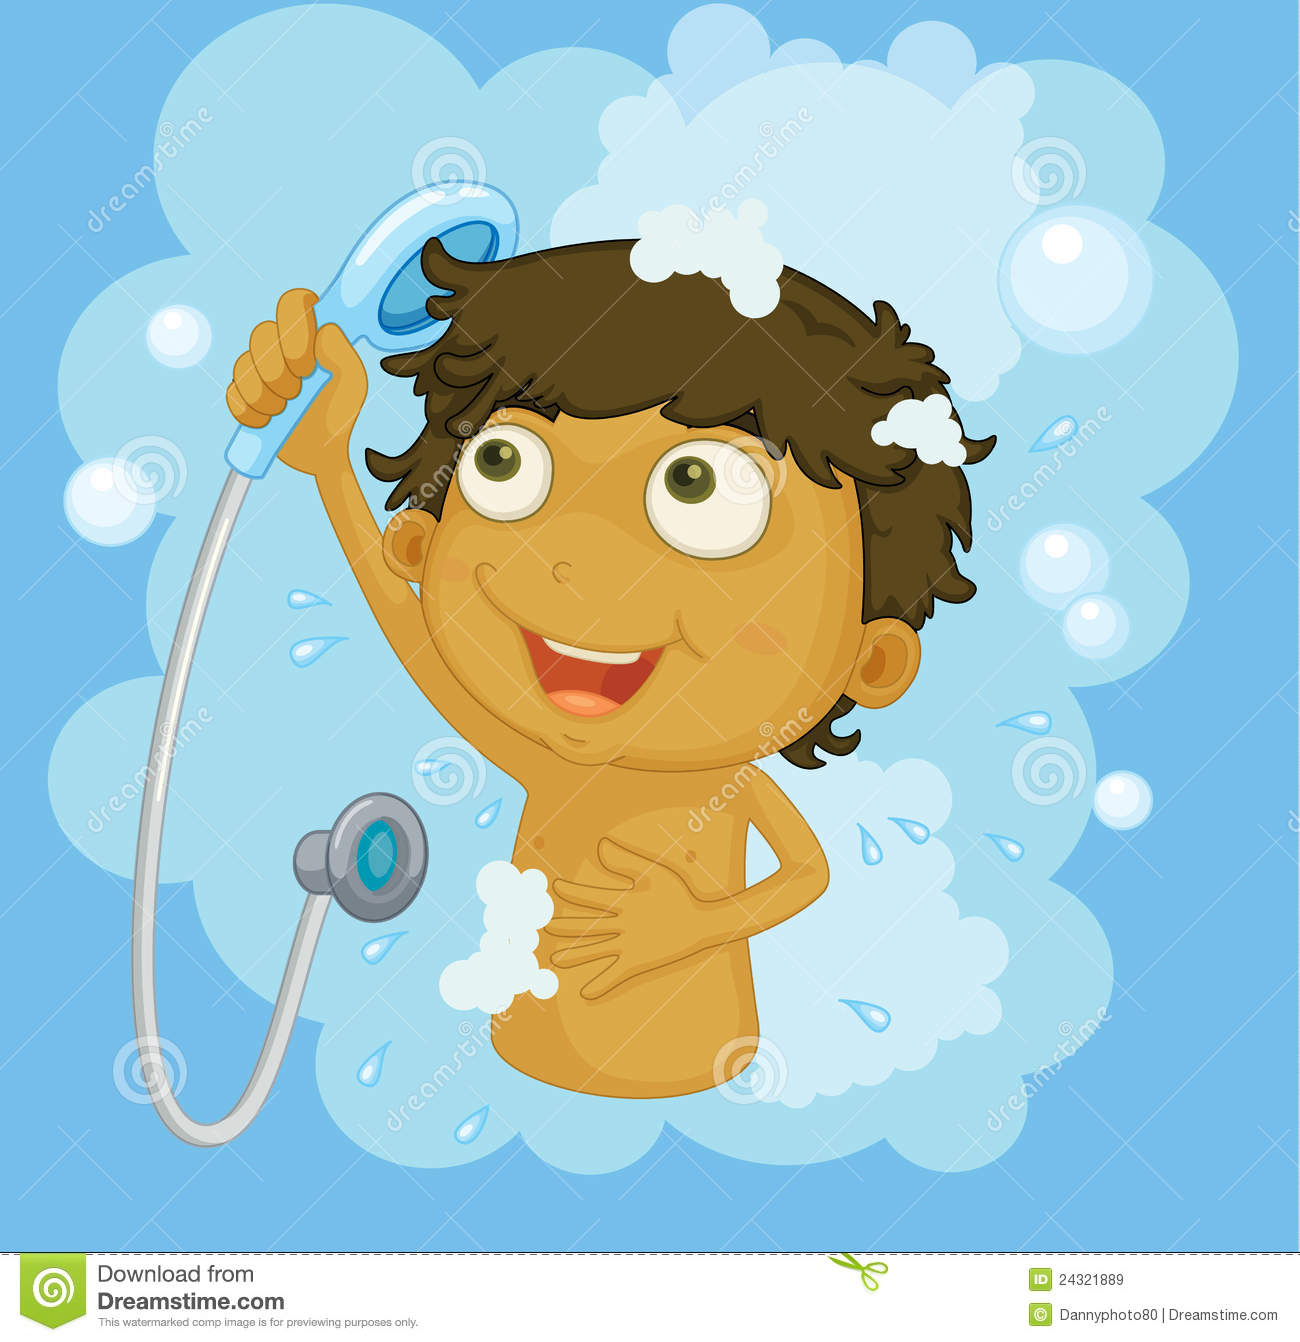 Kids take a shower clipart 12 » Clipart Station.